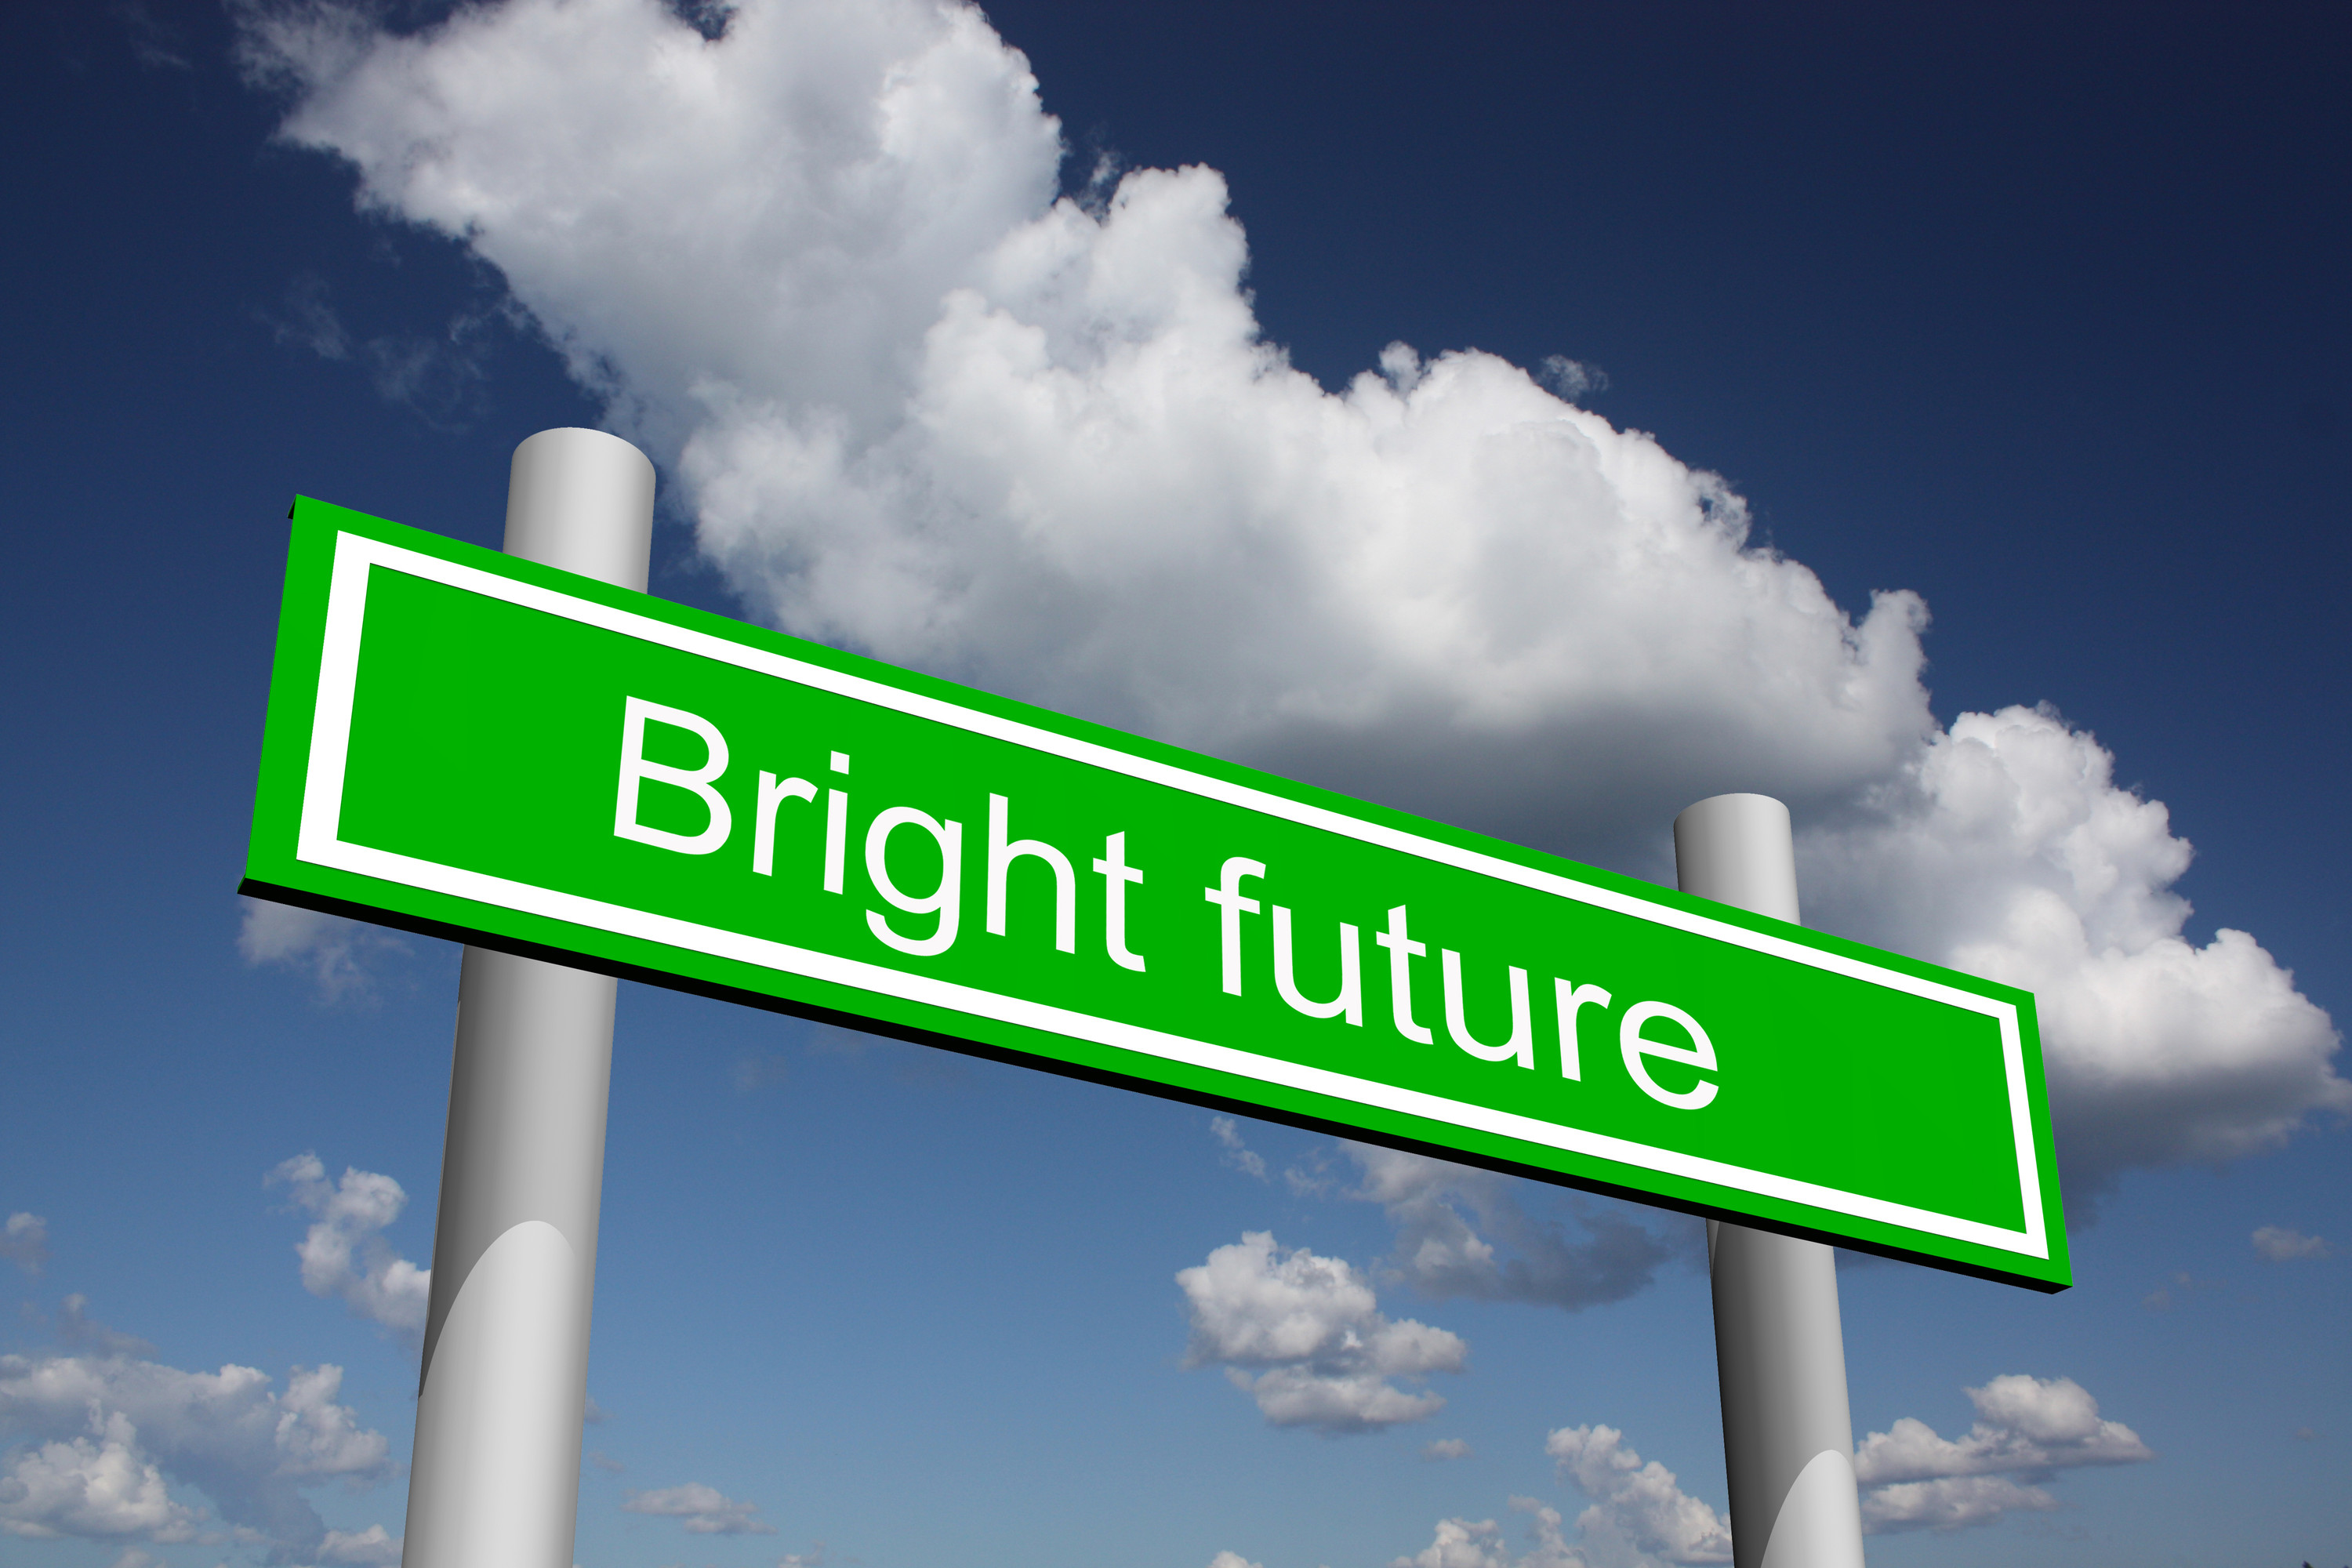 Bright Future Sign 2898.06 Kb